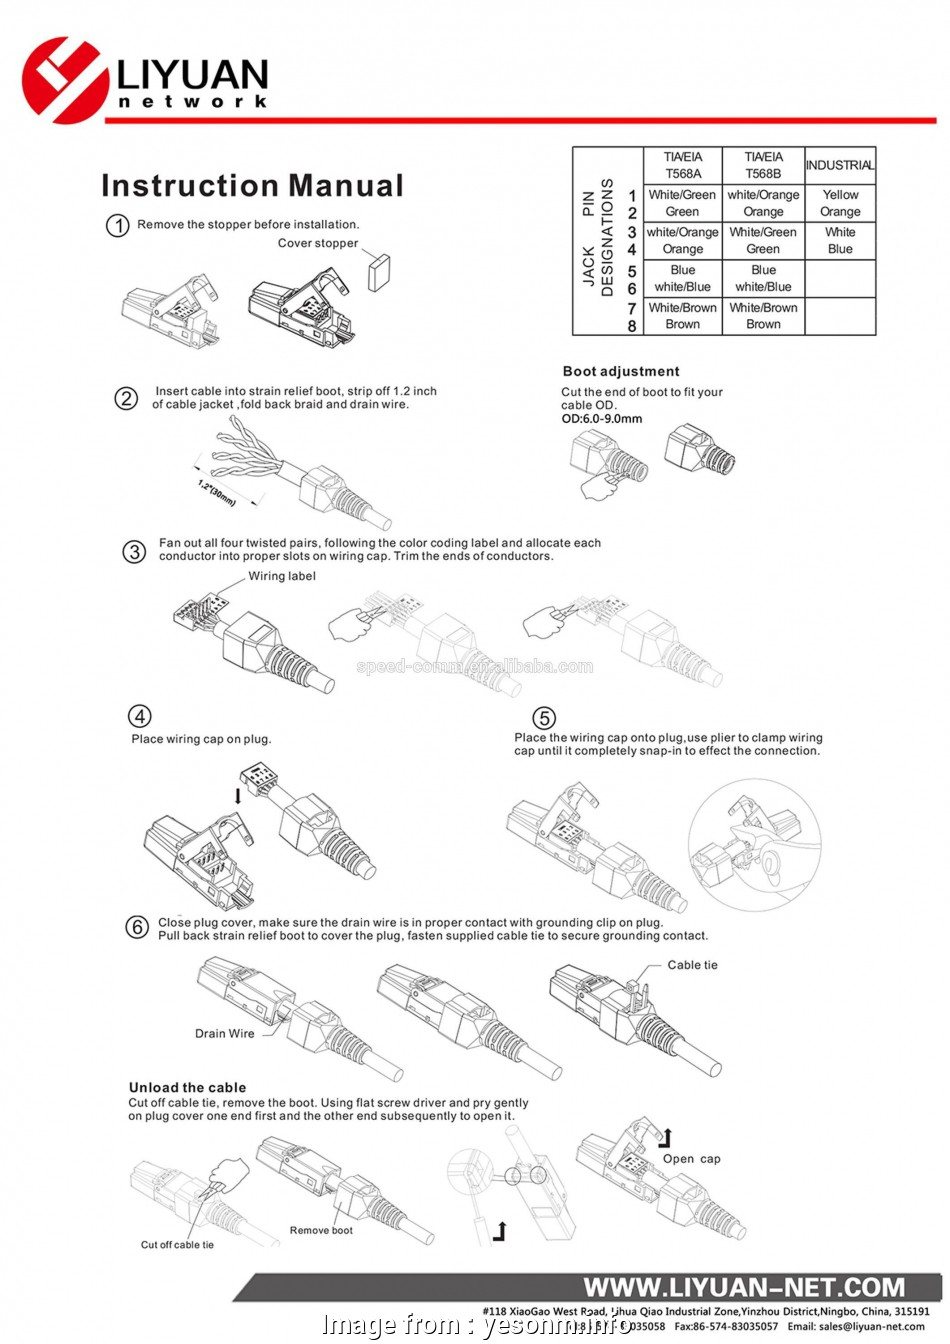 Rj11 To Rj45 Wiring Diagram Top Cat 6 Wiring Diagram Wall